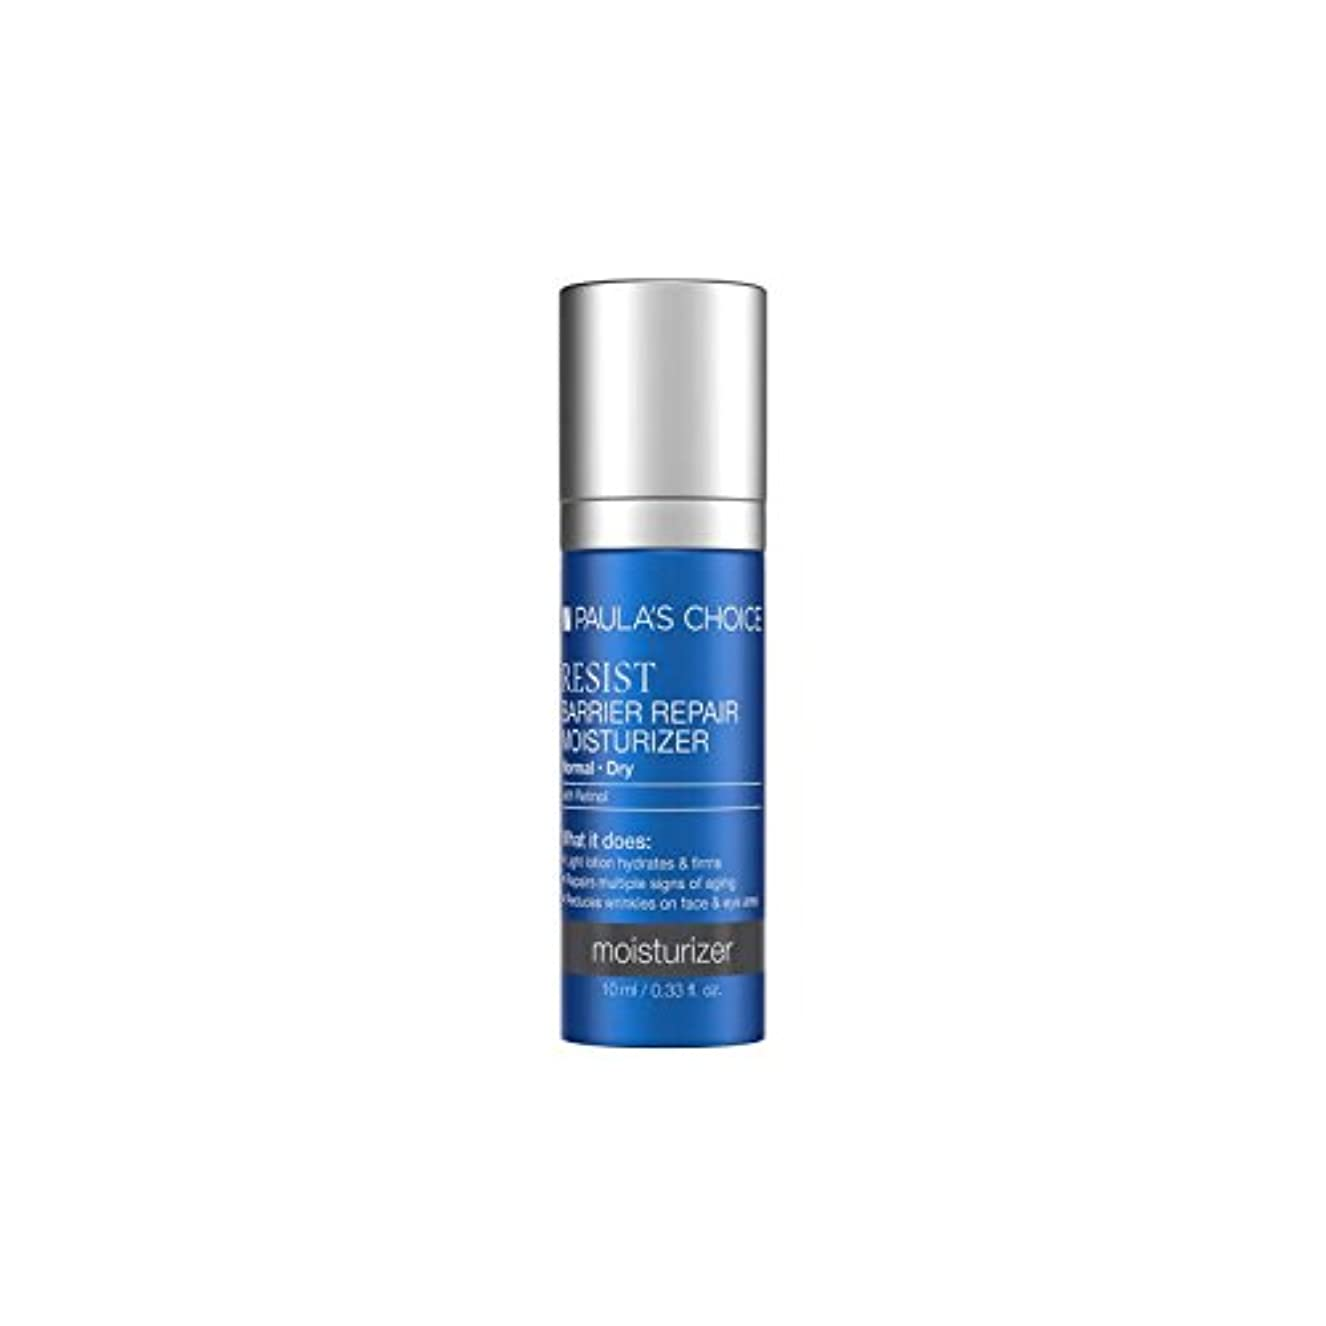 アラスカ先例角度Paula's Choice Resist Barrier Repair Moisturizer With Retinol - Trial Size (10ml) (Pack of 6) - トライアルサイズ(10ミリリットル...